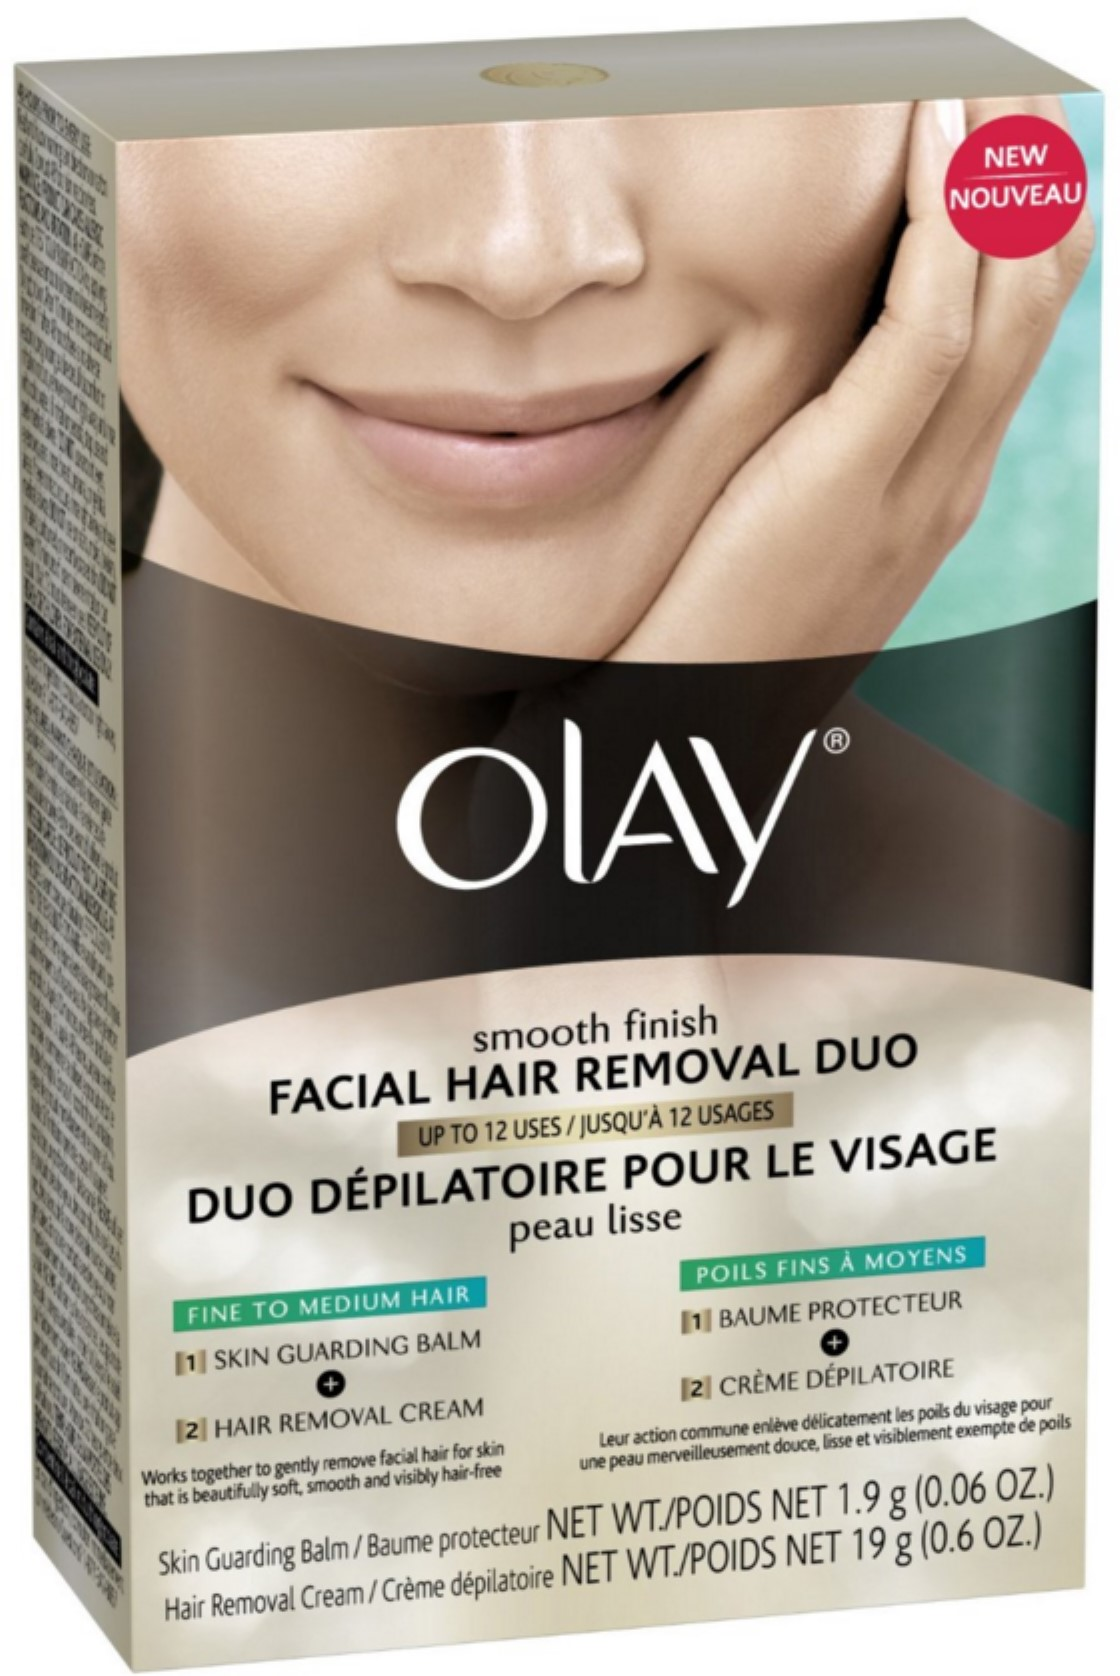 Olay Smooth Finish Facial Hair Removal Duo For Fine to Medium Hair